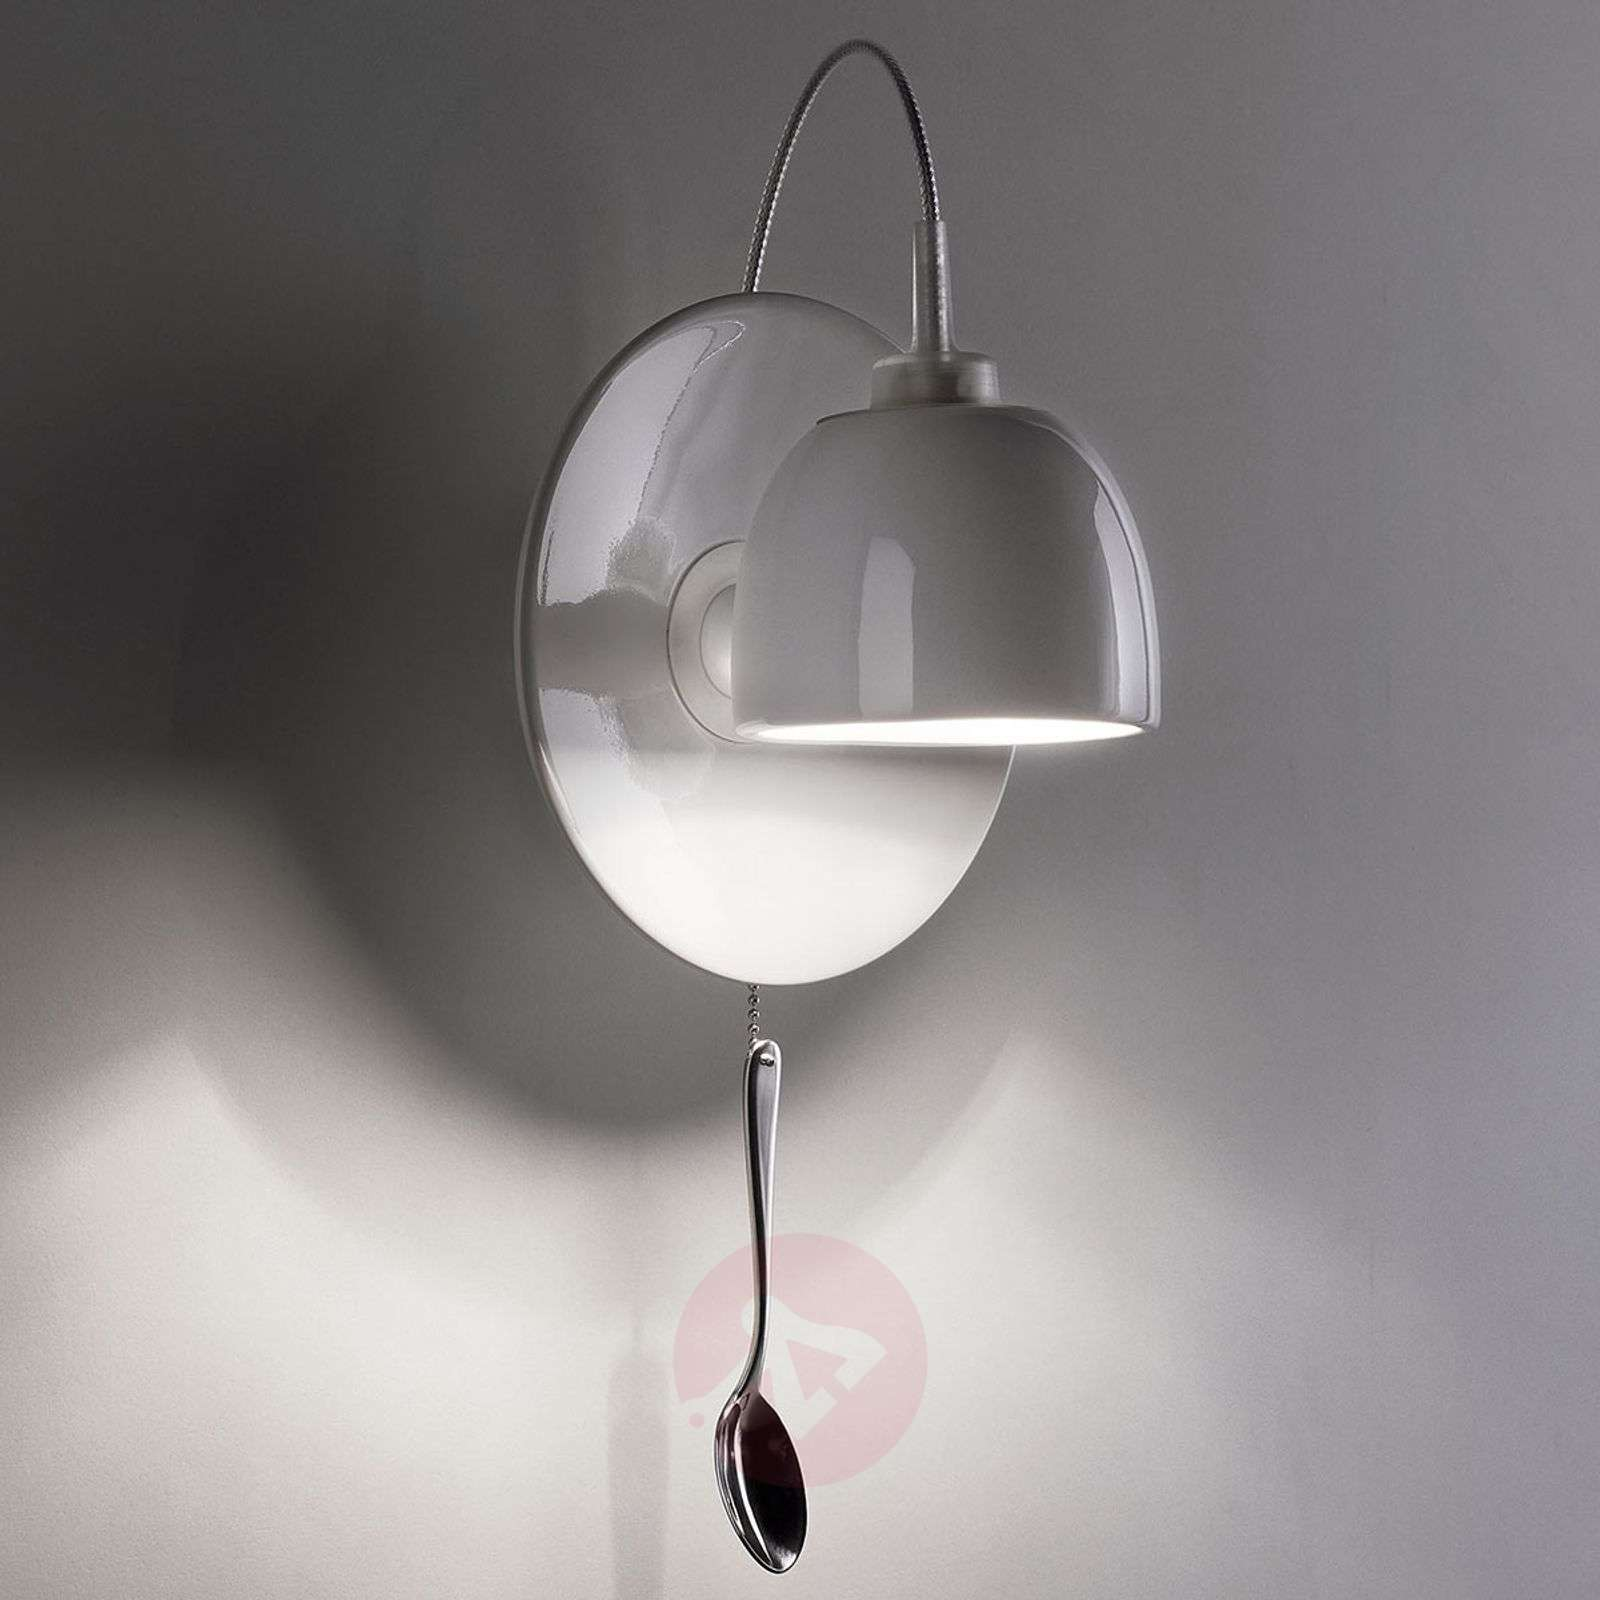 Wall light Light au Lait in the shape of a cup-5026027-03